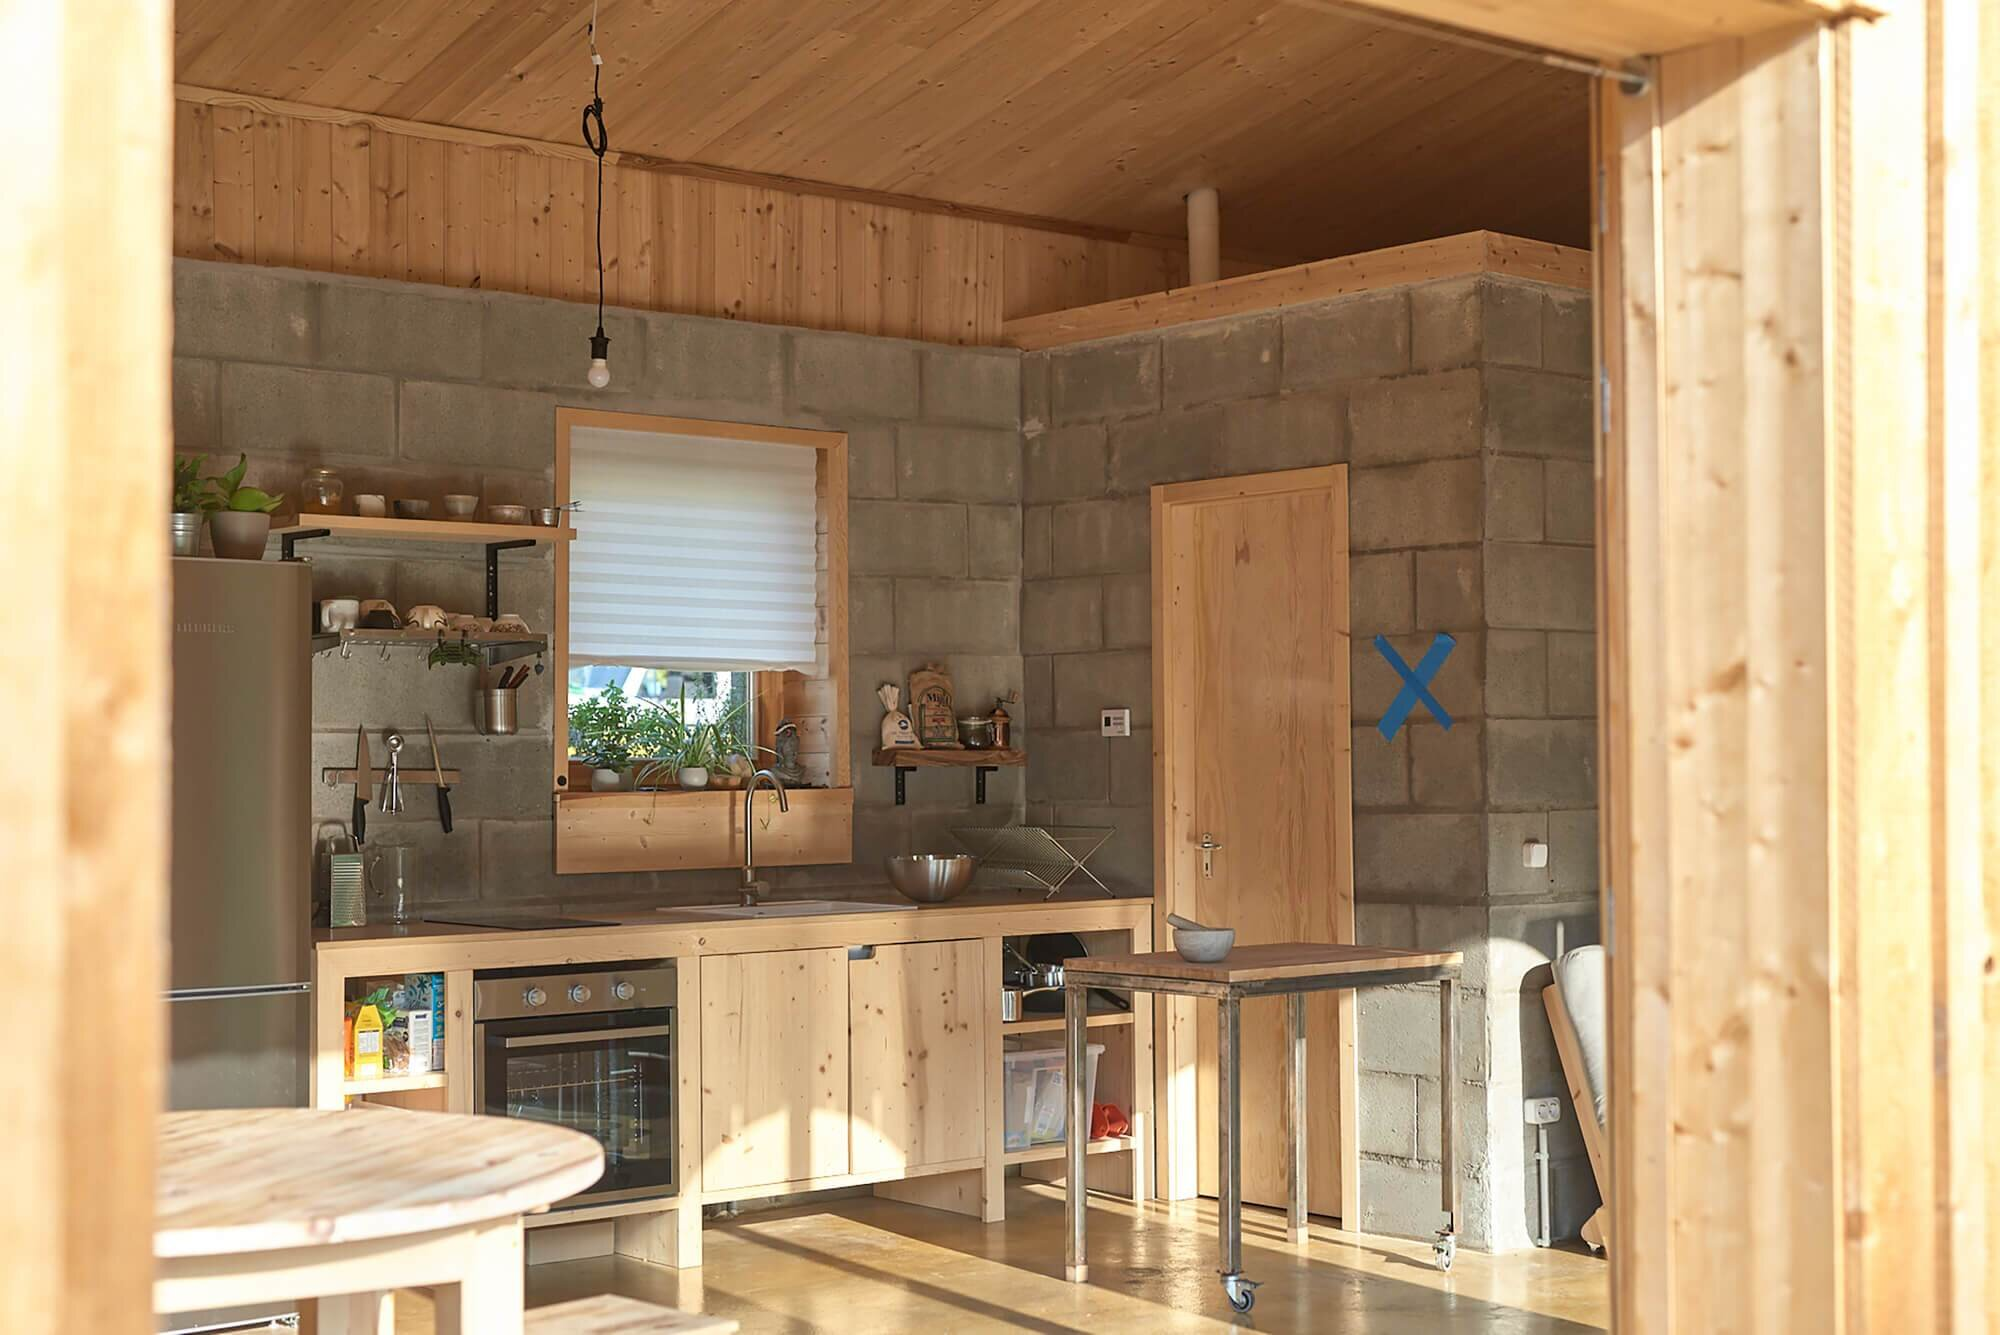 House-for-a-Young-Family-Architecture-Uncomfortable-Workshop-Hungary-4